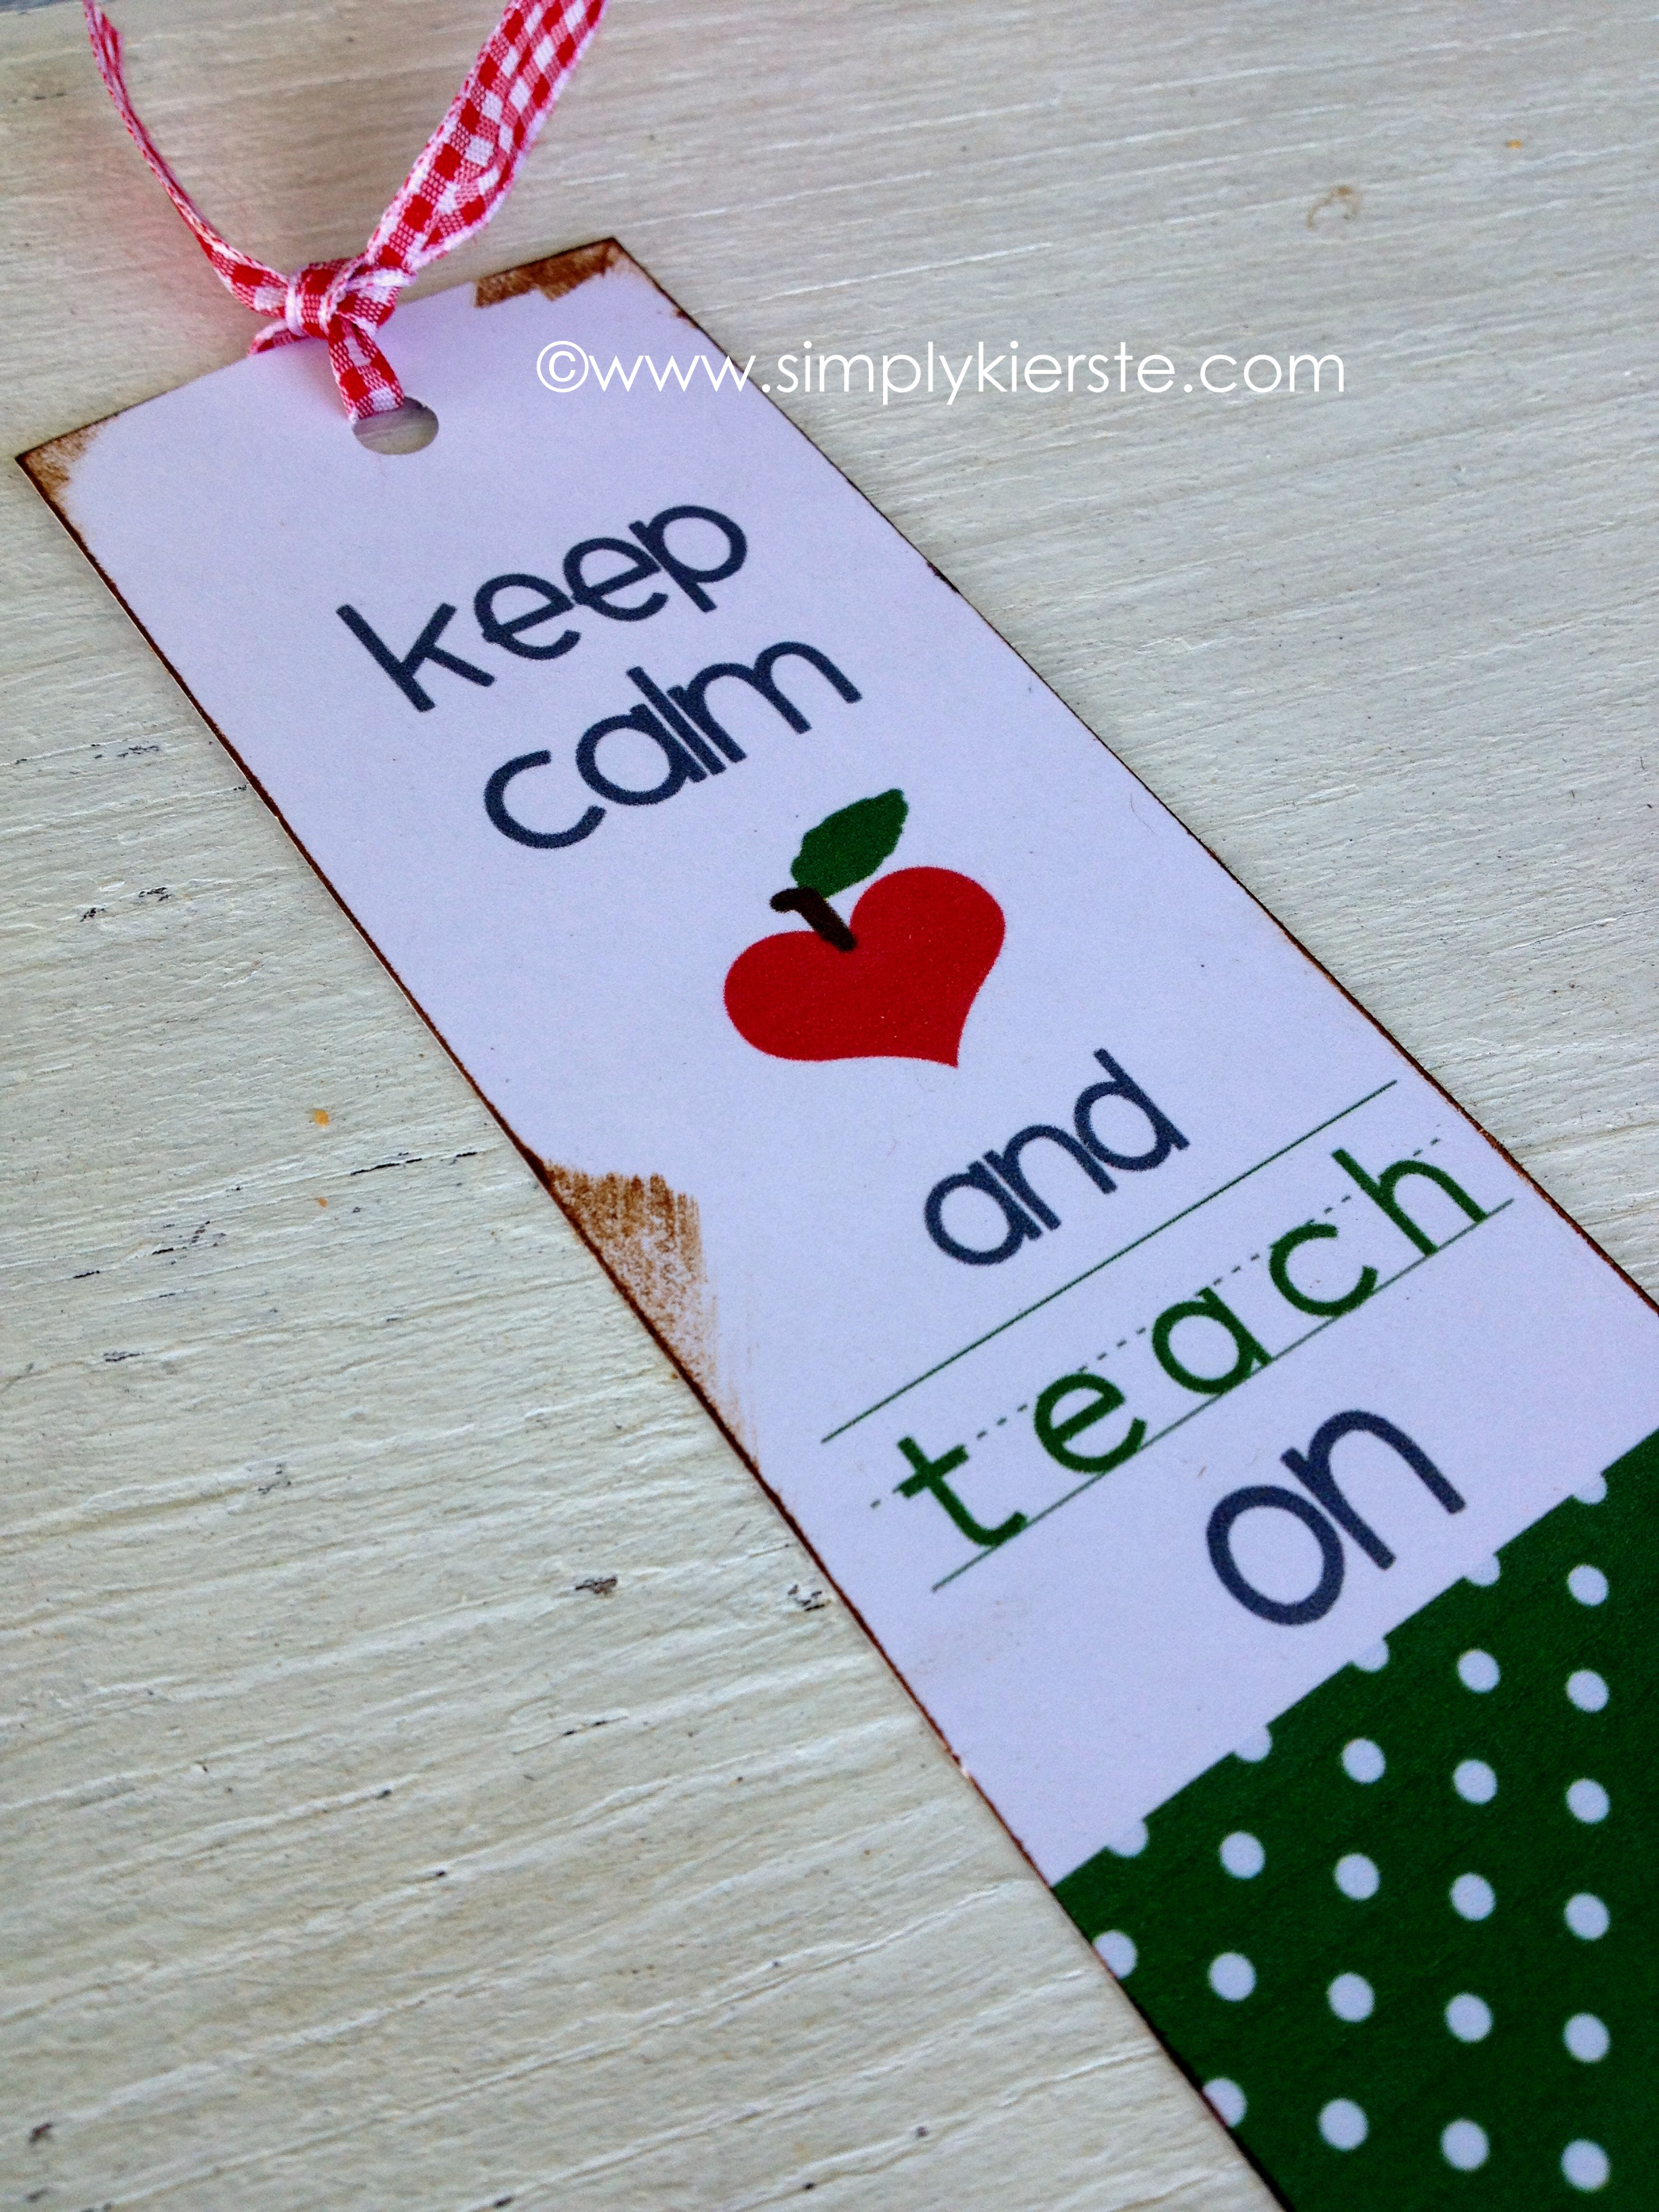 Very Keep Calm and Carry OnTeacher Bookmarks }| simplykierste.com HB85